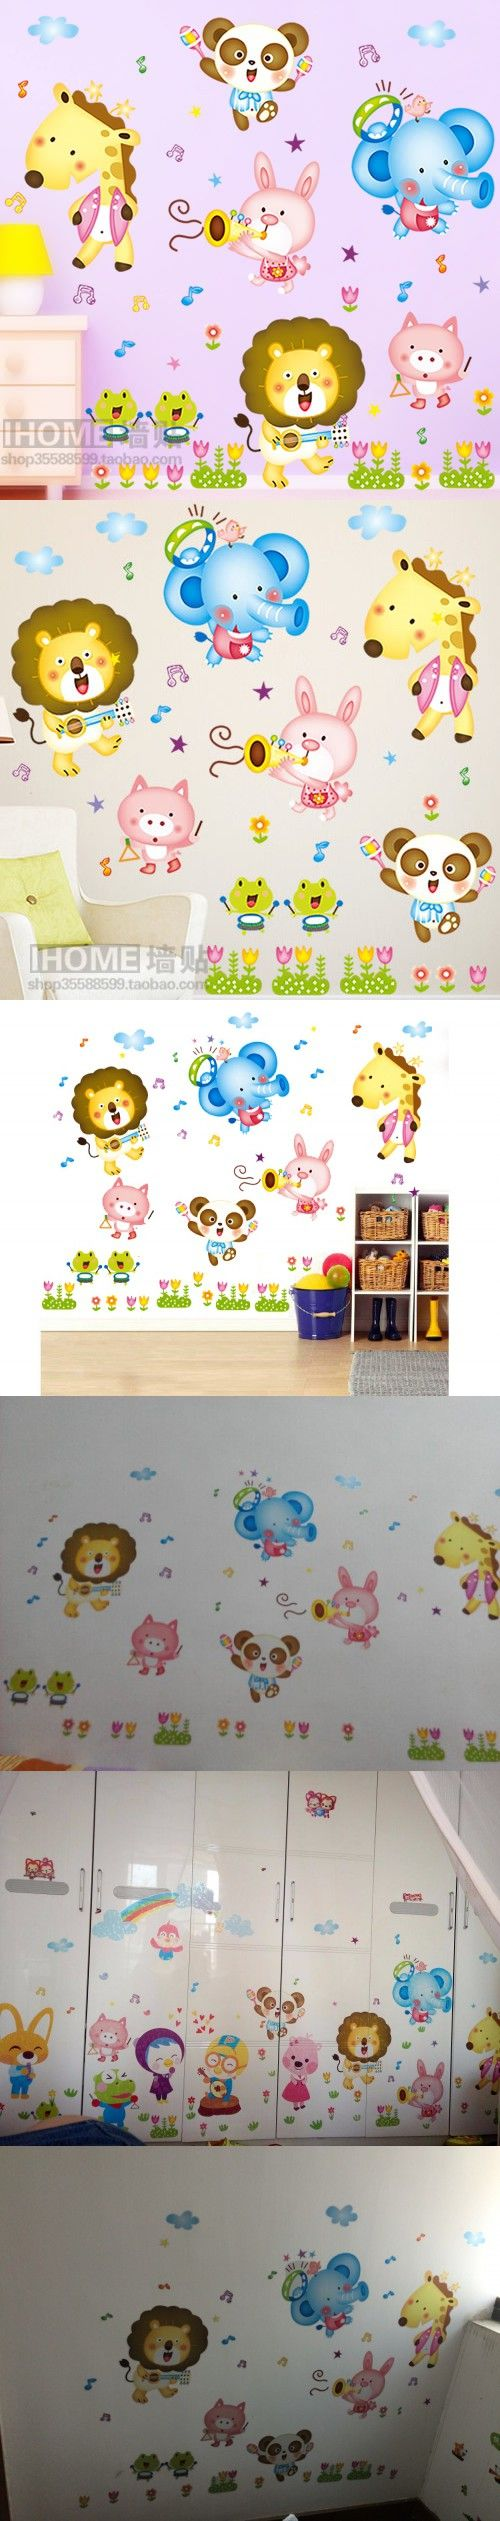 best 20 autocollant mural ideas on pinterest autocollants autocollant mural pegatinas pared infantiles cartoon animal wall stickers child wall paper kids baby room bedroom